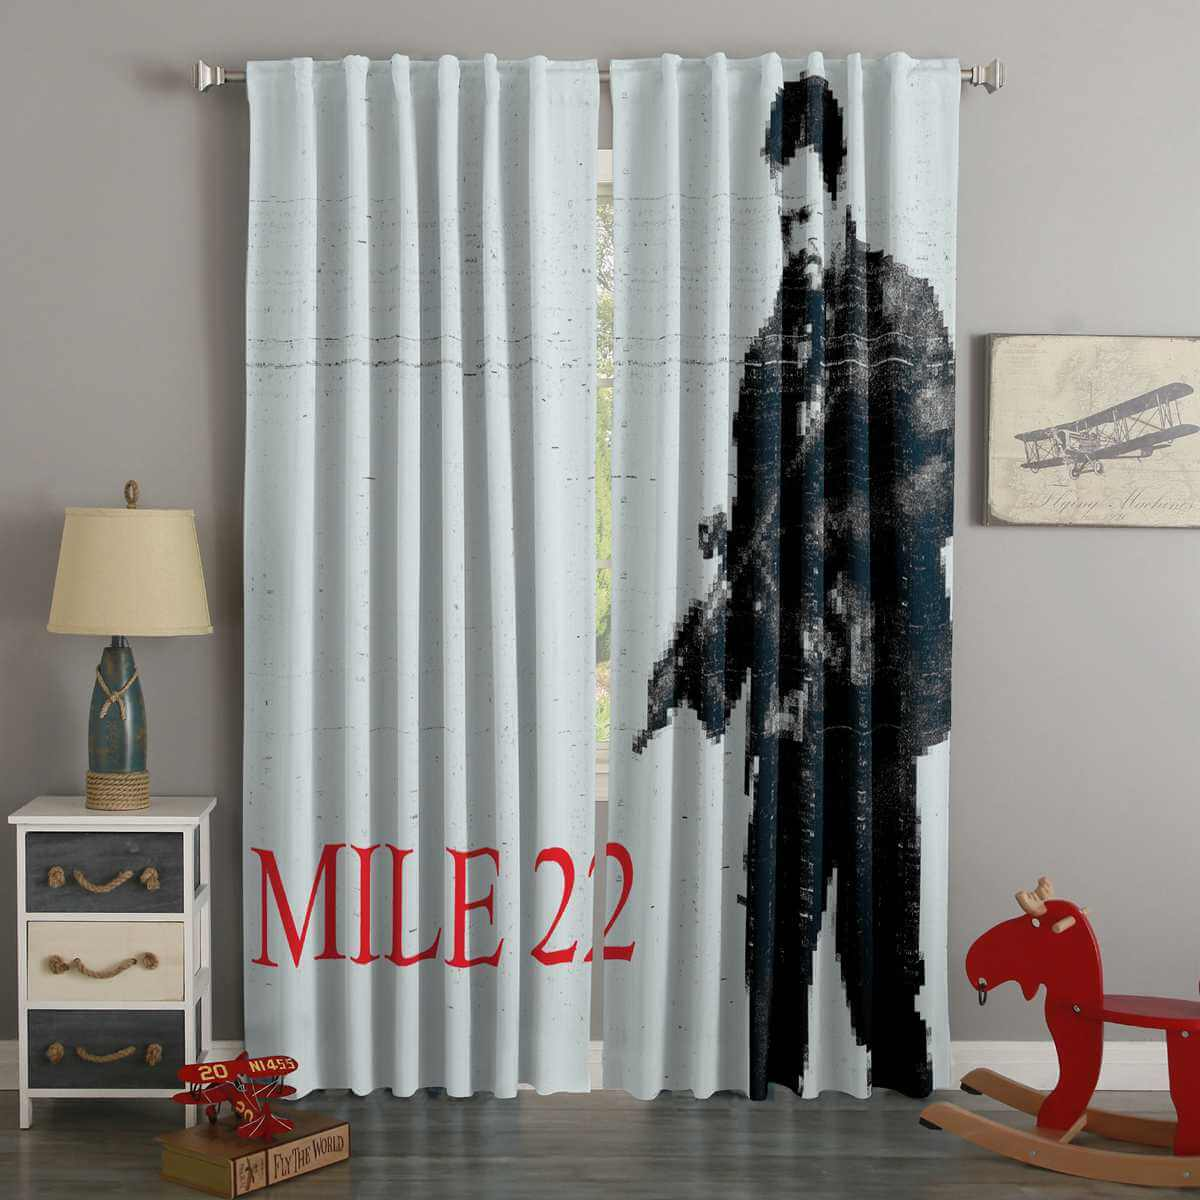 3D Printed Mile 22 Style Custom Living Room Curtains